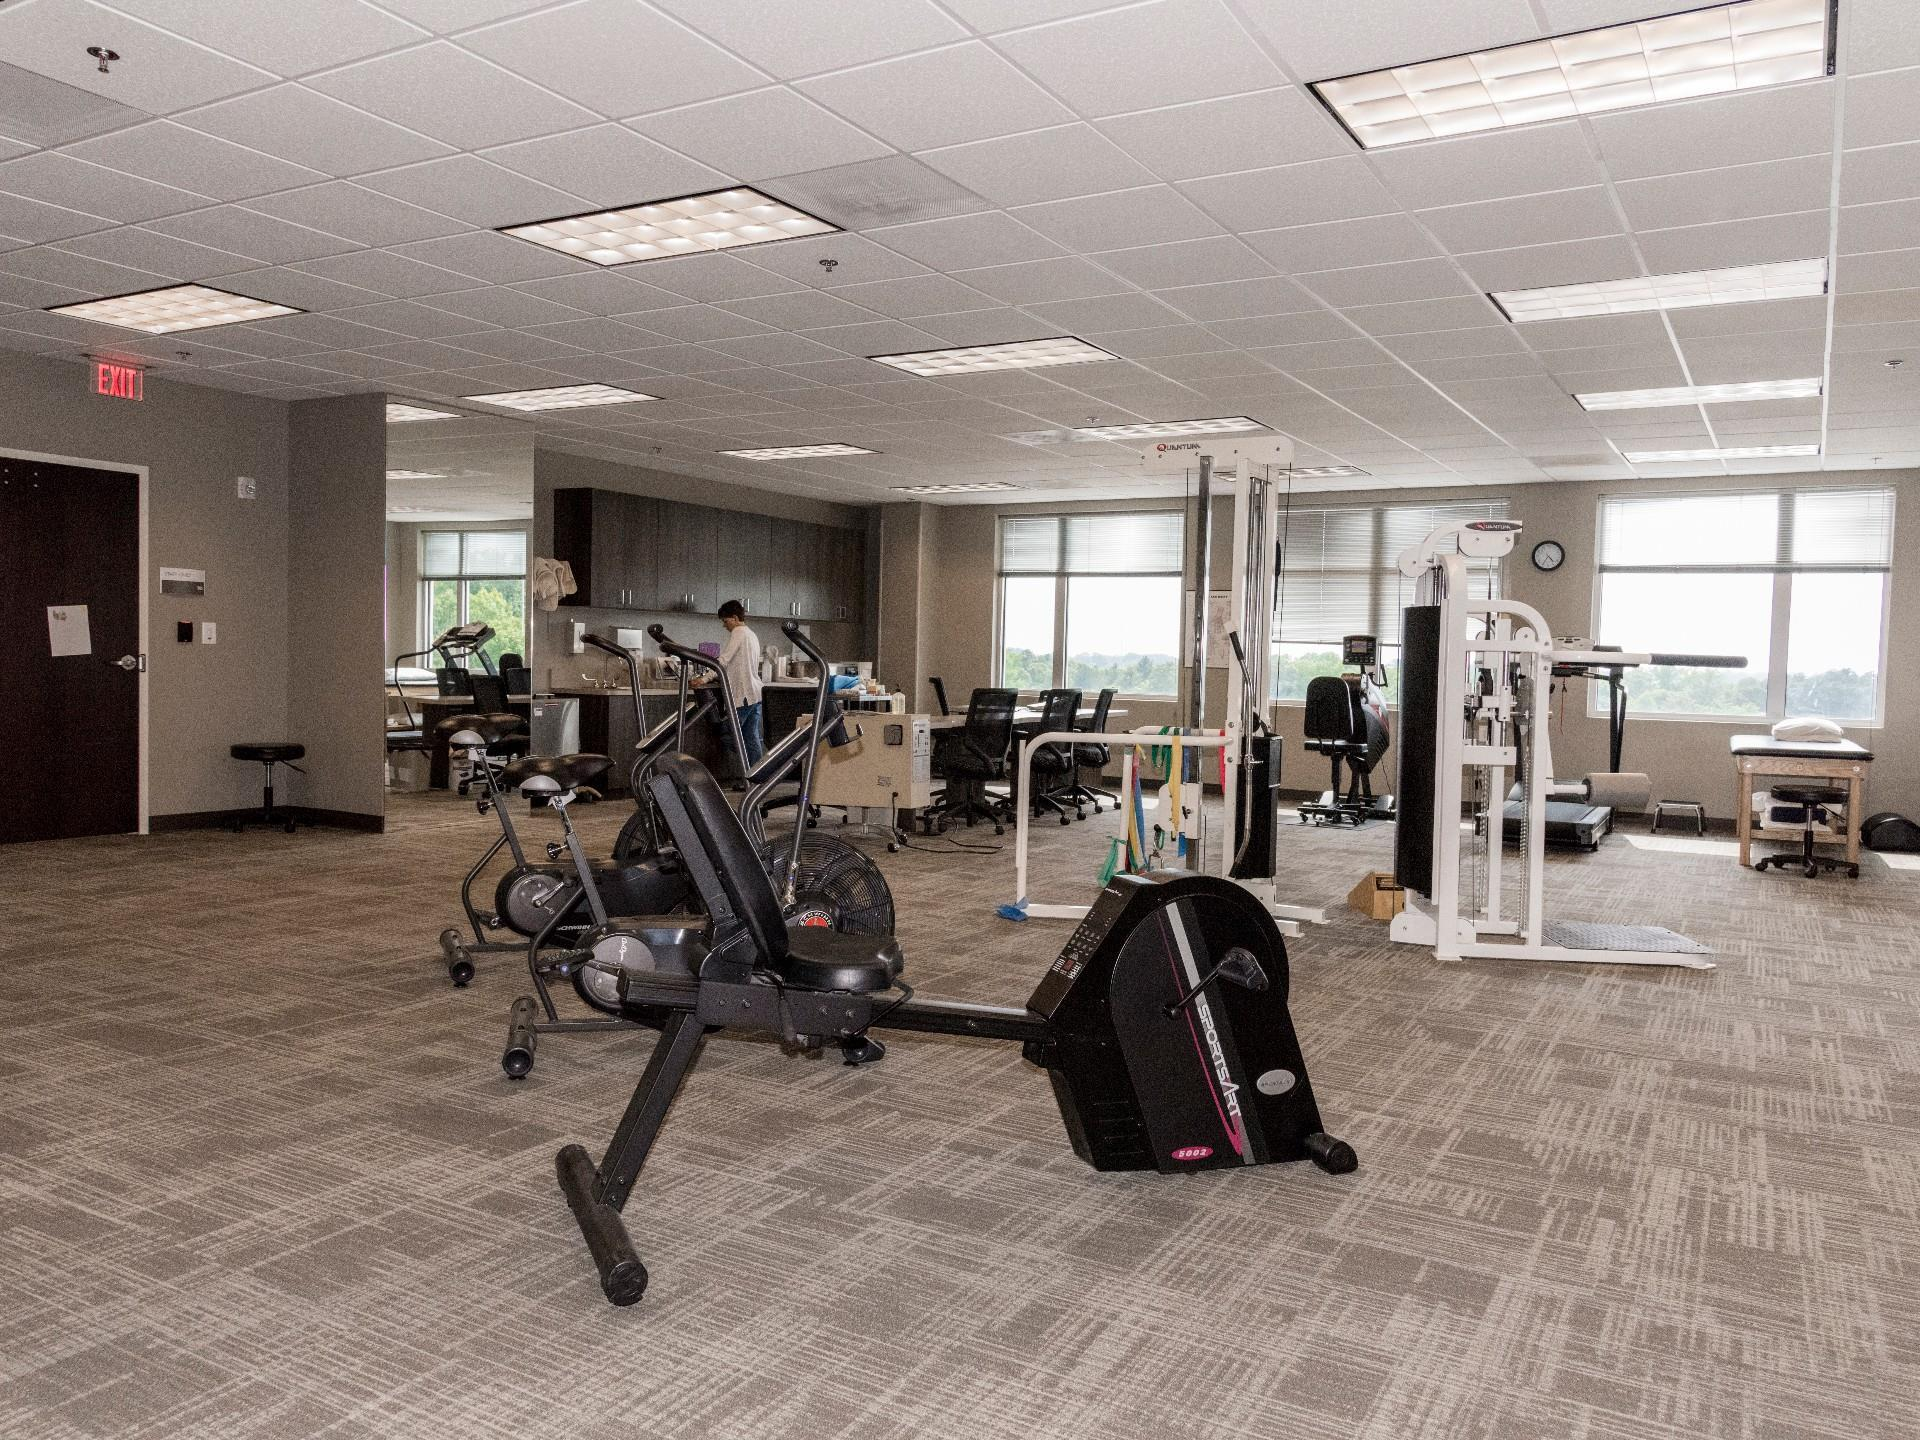 indoor gym with big open light windows and workout equipment